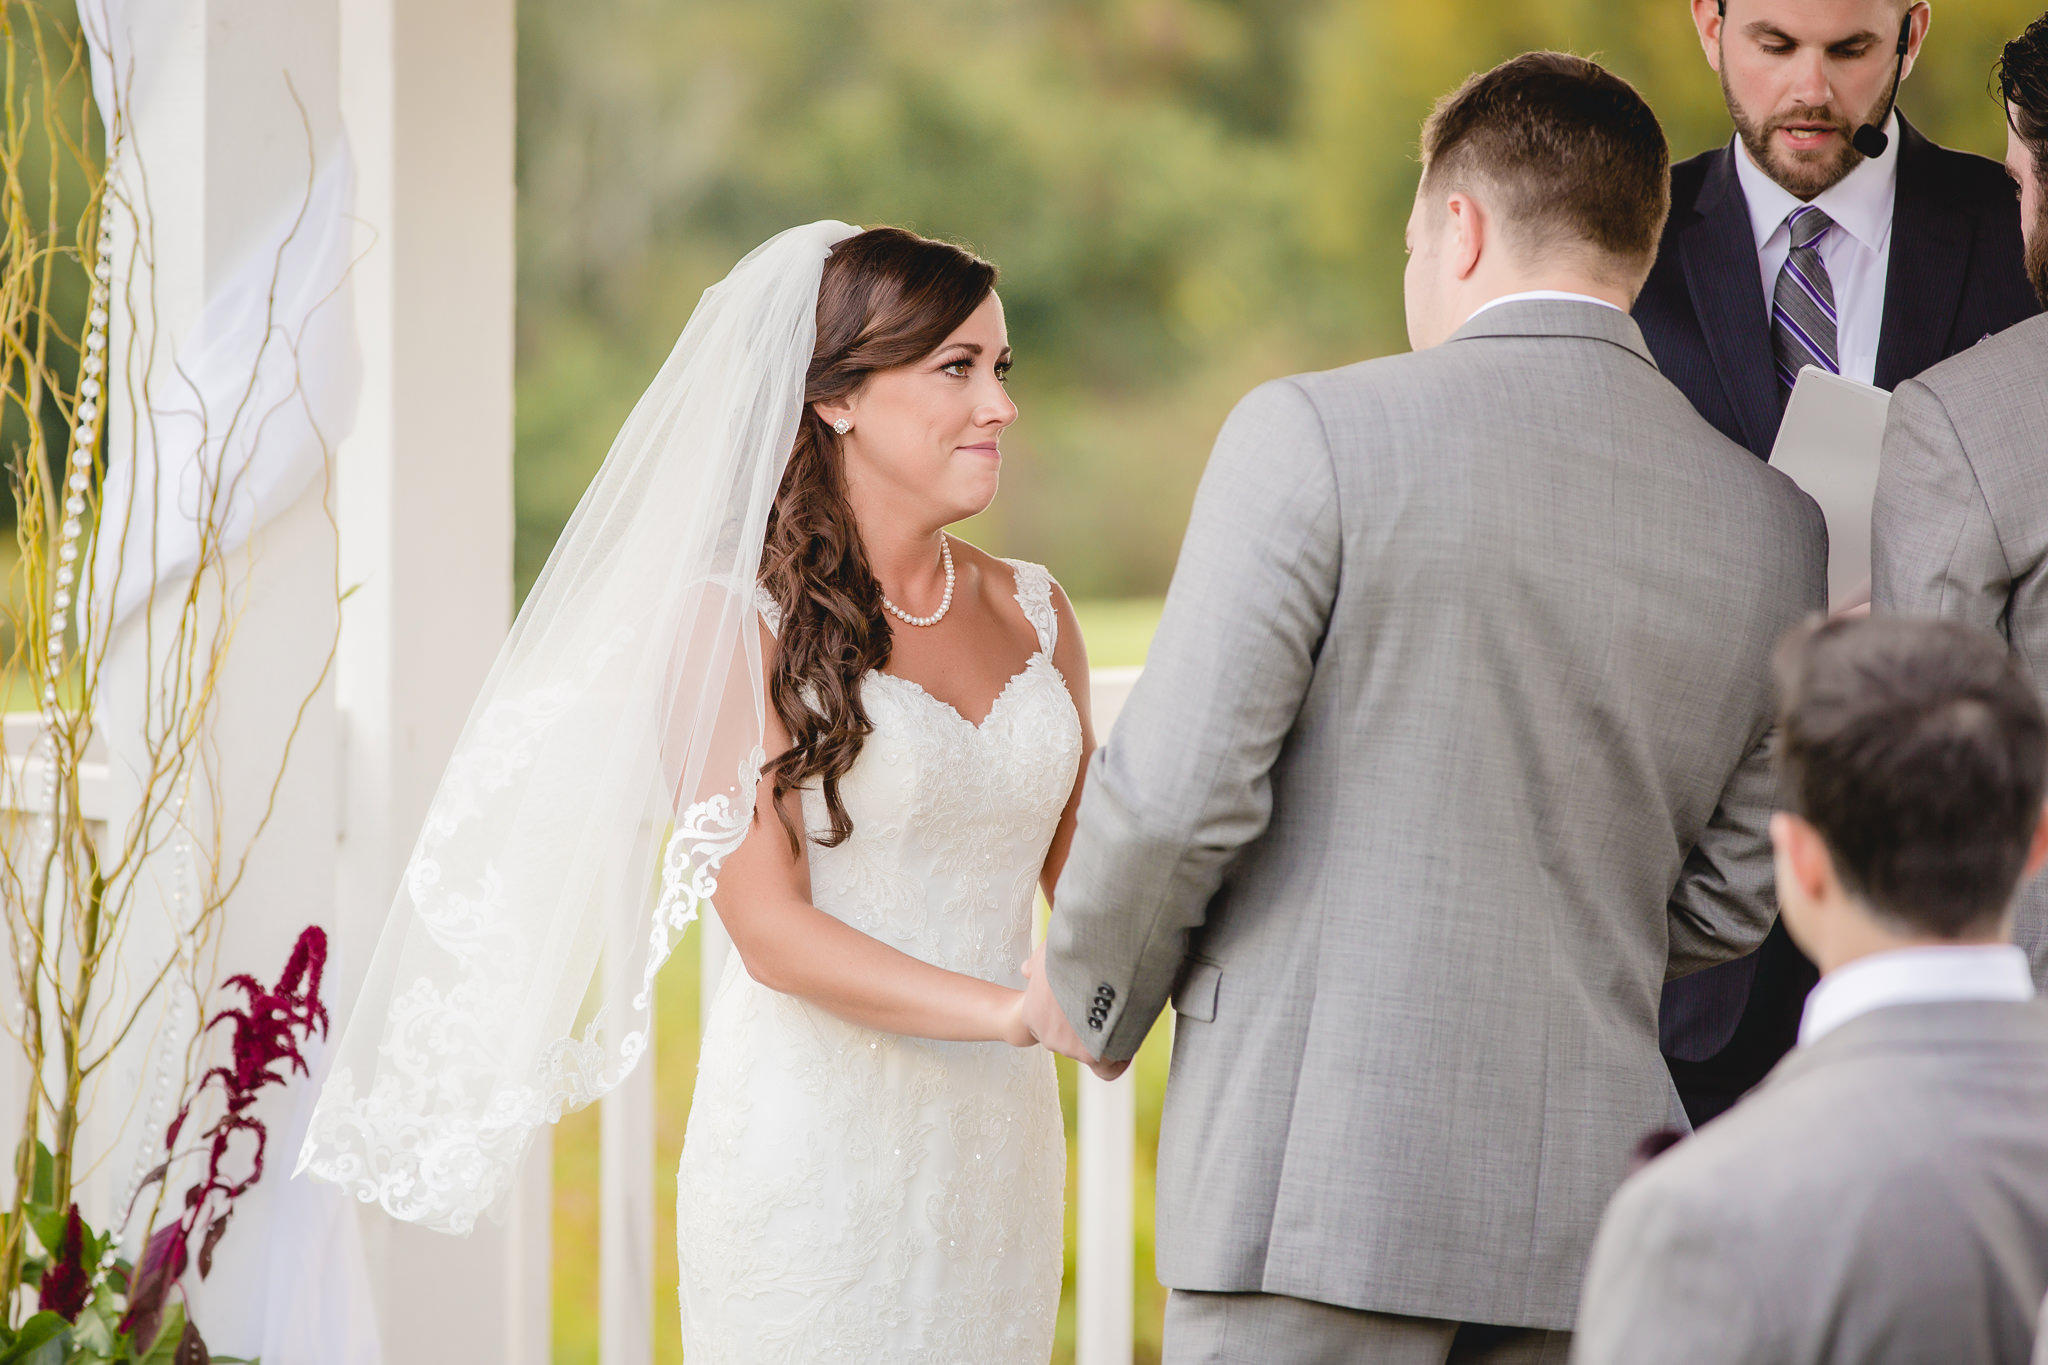 Bride smiles at her groom during their outdoor wedding ceremony at White Barn